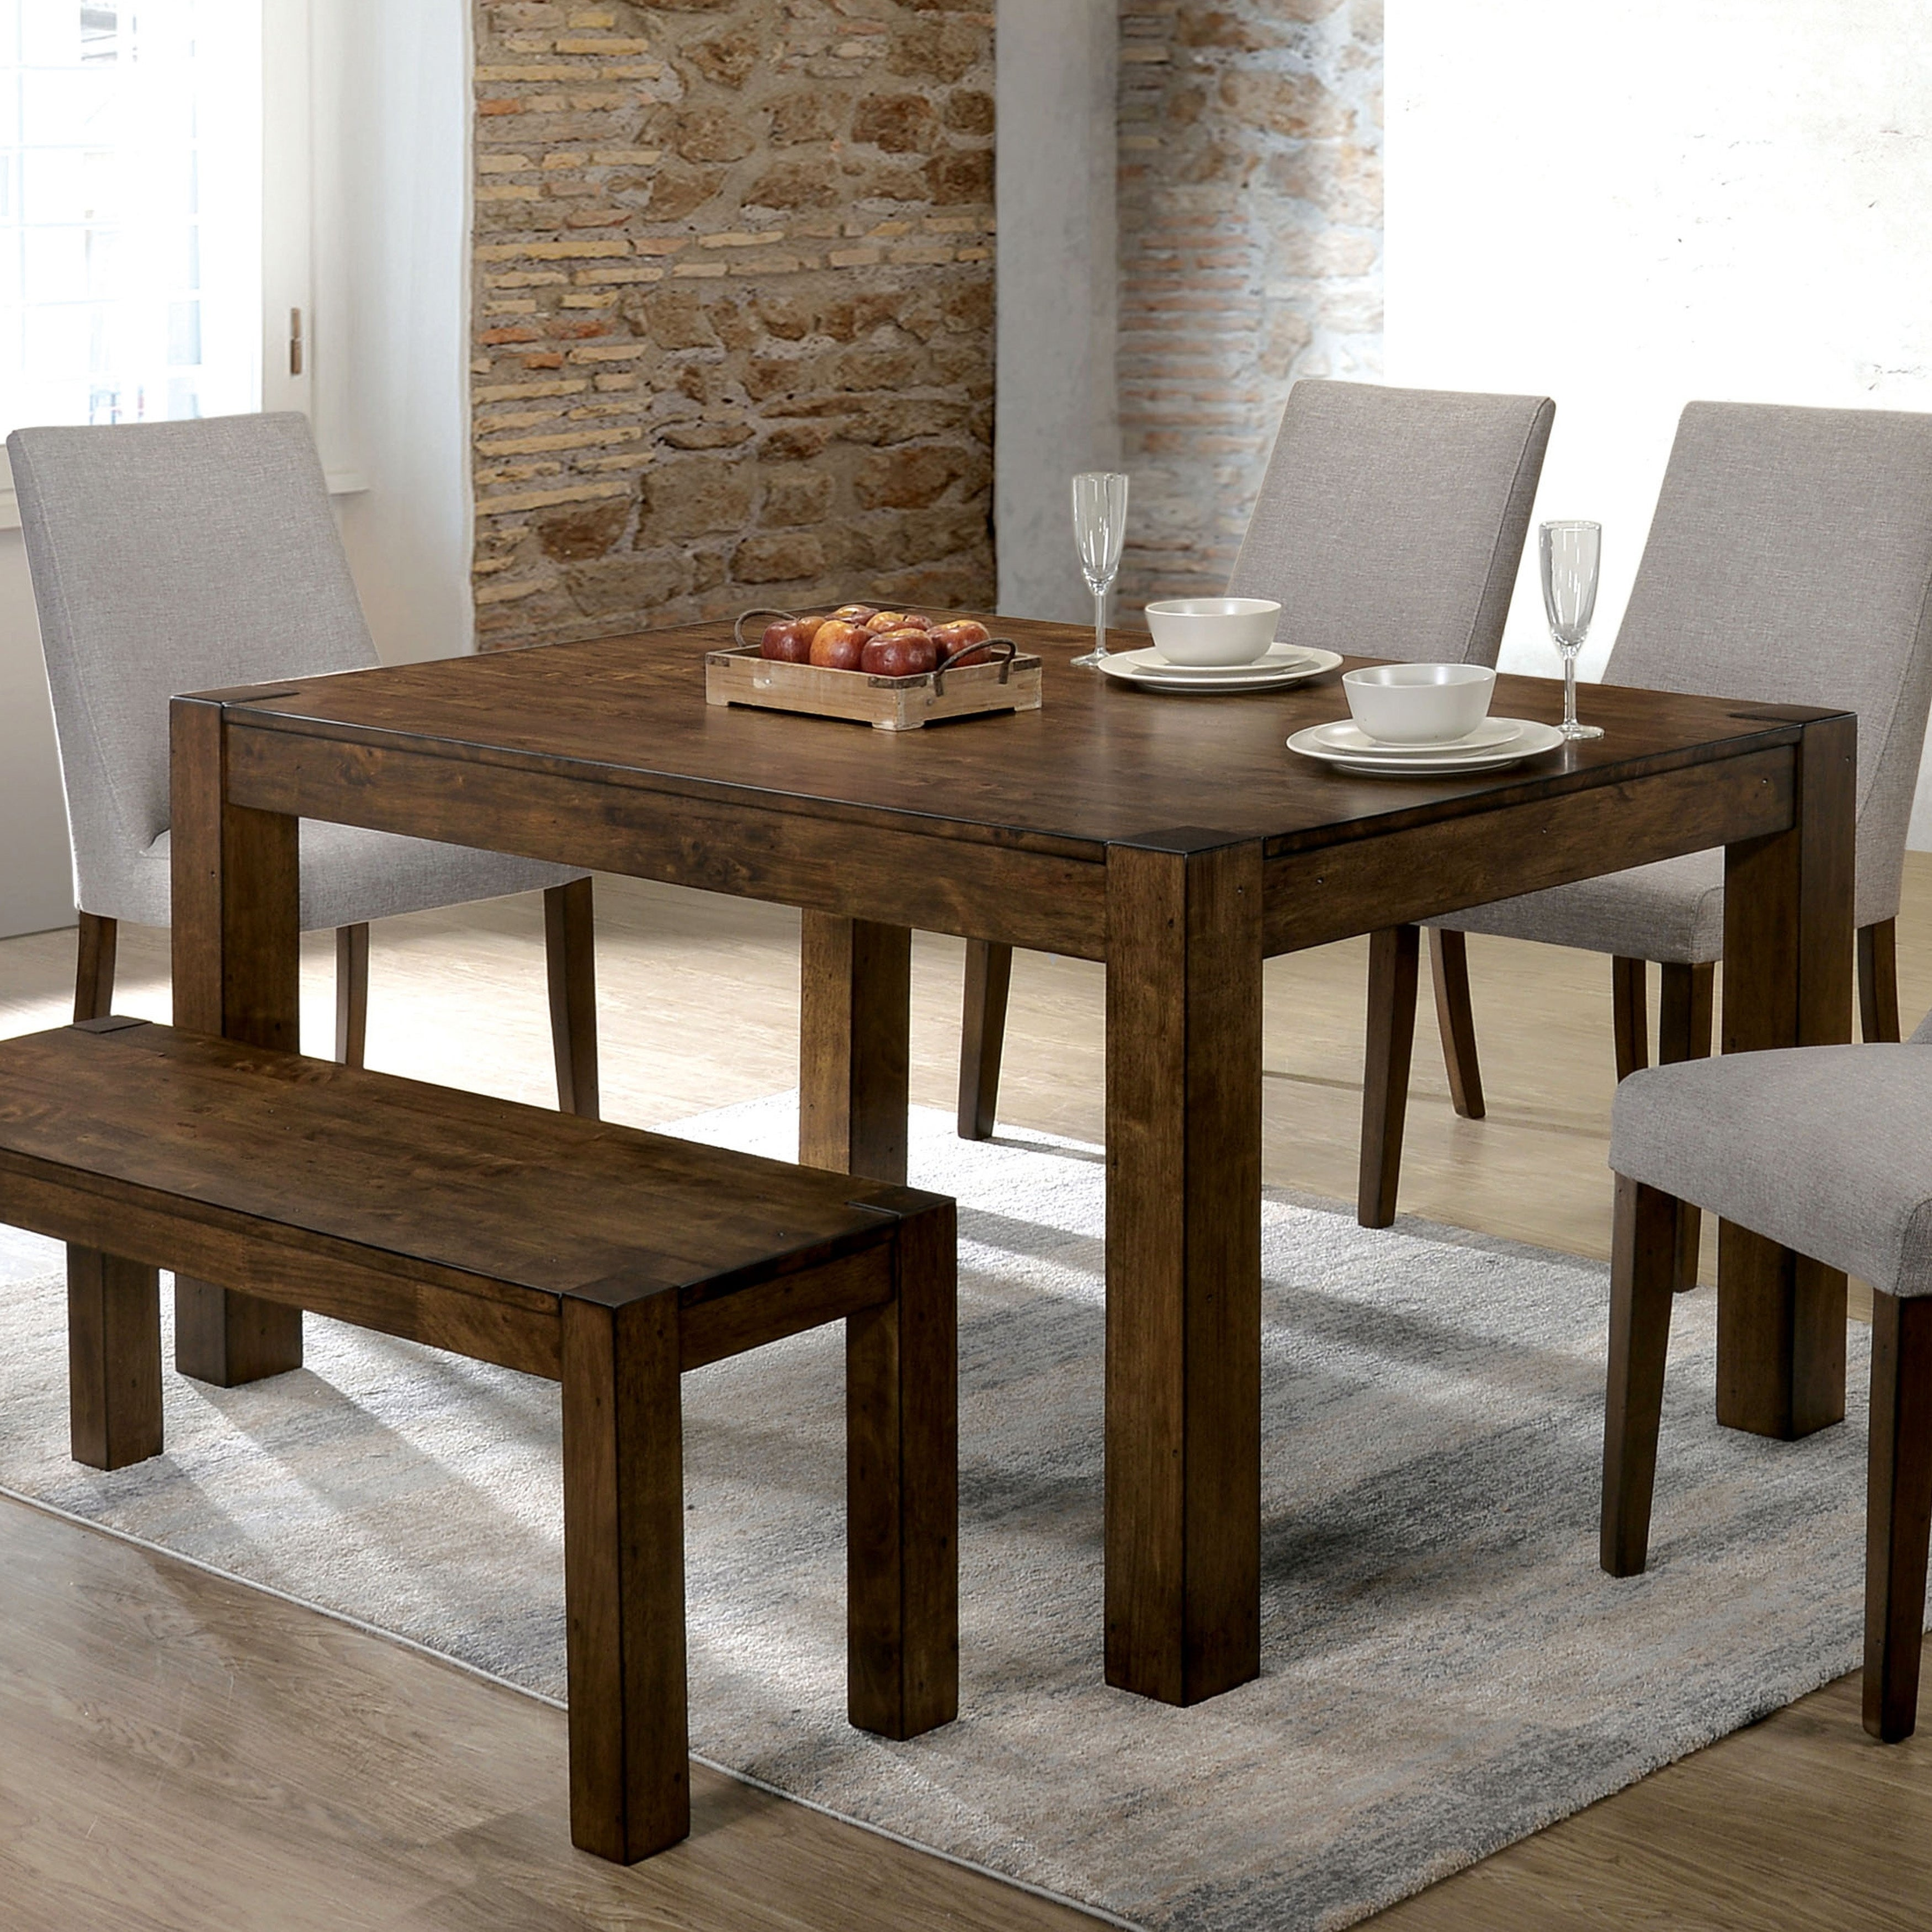 Carbon Loft Lawless Rustic Walnut 66 Inch Dining Table